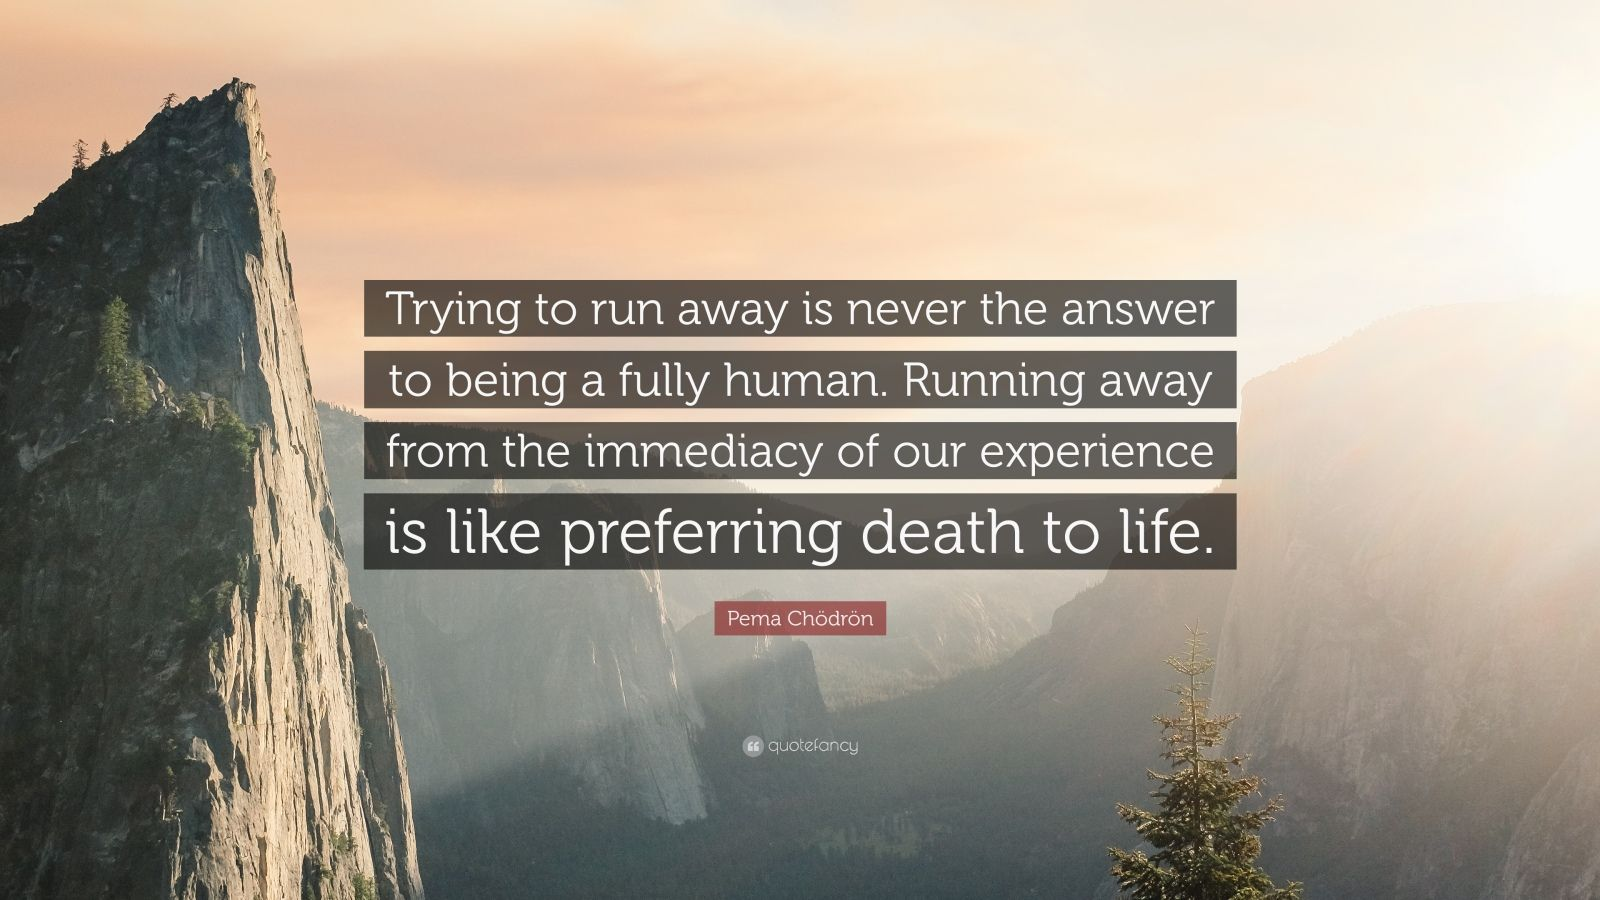 """Pema Chödrön Quote: """"Trying to run away is never the answer to being a fully human. Running away from the immediacy of our experience is like preferring death to life."""""""